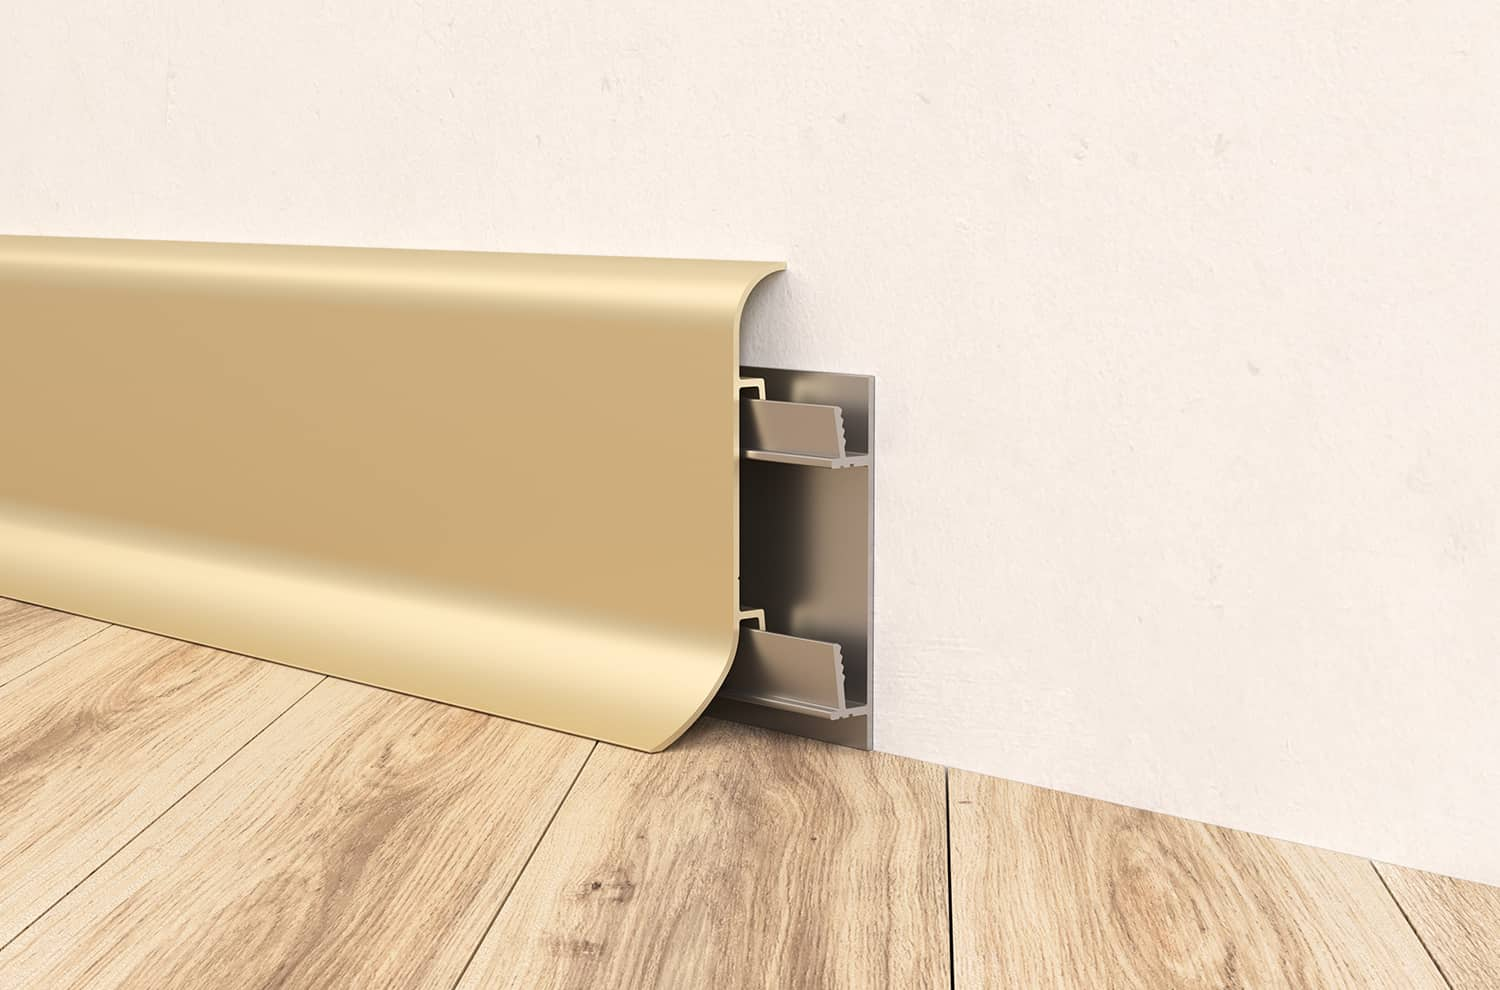 aluminum skirting design for wall and floor